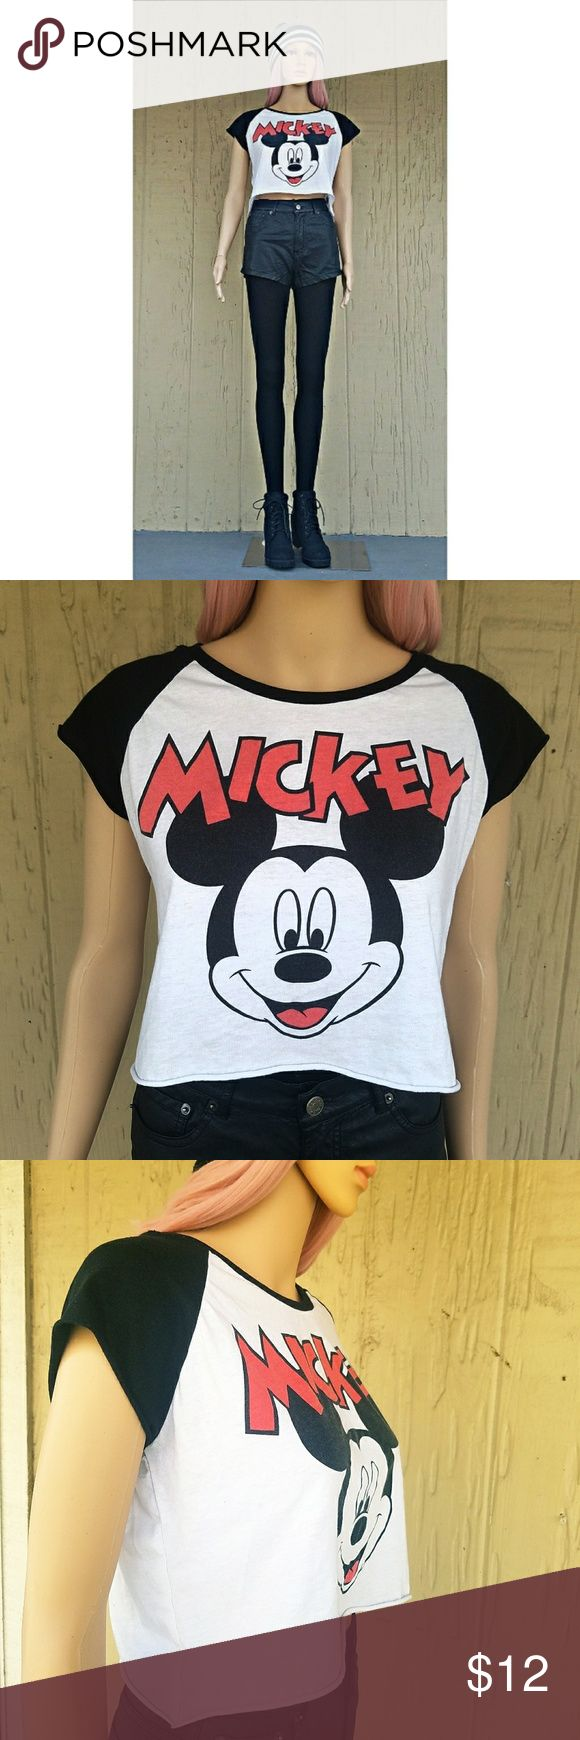 "Disney White And Black Mickey Mouse Crop Top Disney Mickey Mouse black panel cap sleeves crop top featuring the little guy's mug himself in blacl and white. A red tongue and classic red lettering that reads ""Mickey"" adds major pop to this top.  60% Cotton 40% Polyester  Color(s): White, Black, Red Disney Tops Crop Tops"